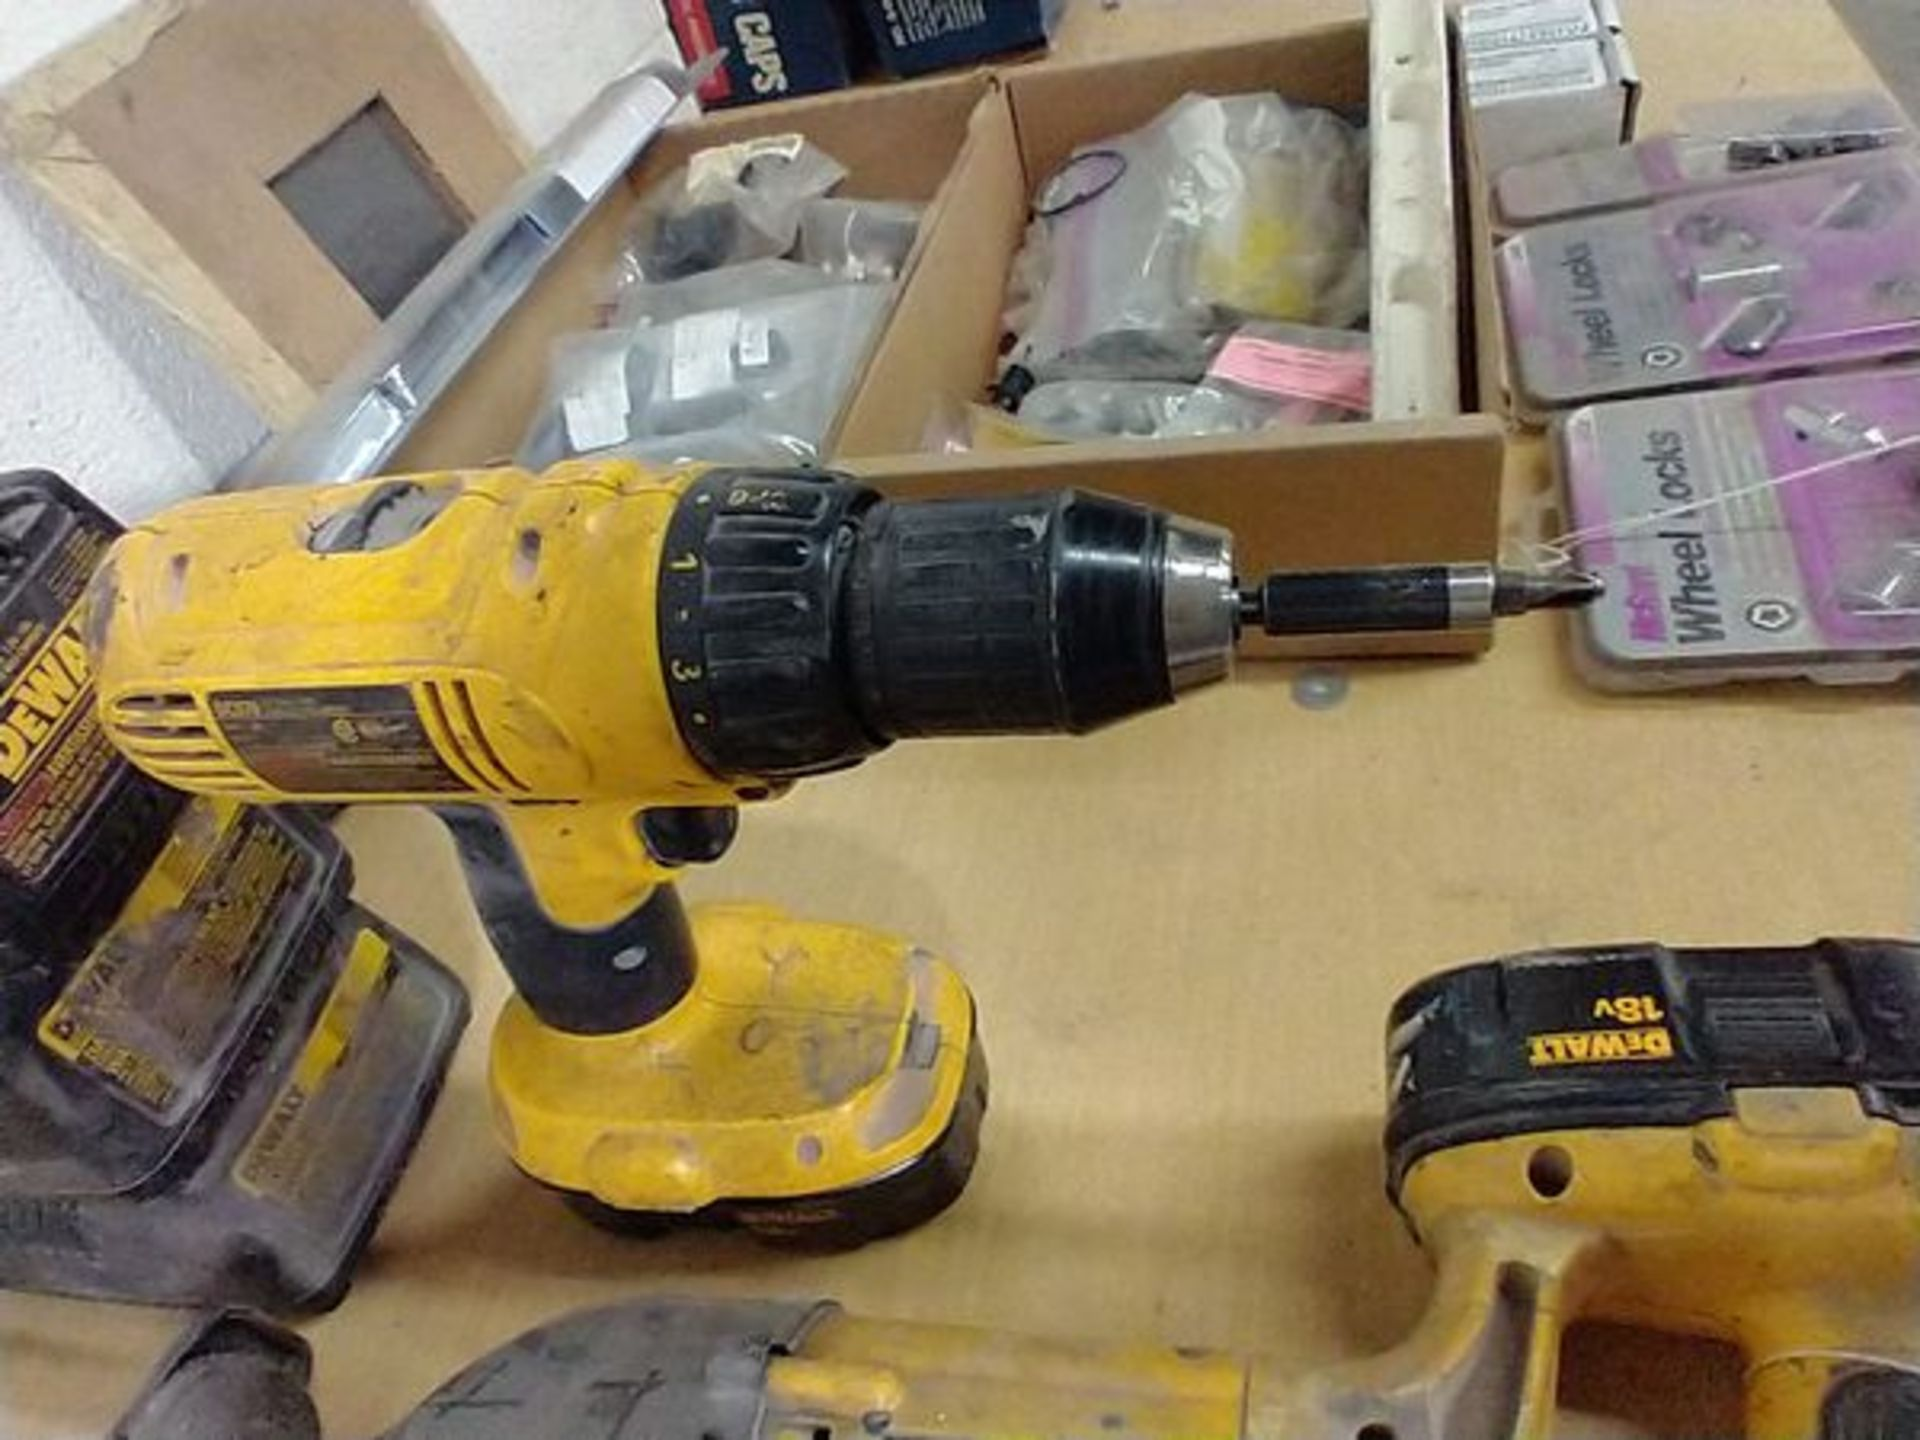 DEWALT DC970 18V DRILL AND DW938 18V RECIPROCATING SAW WITH CHARGER - Image 3 of 4